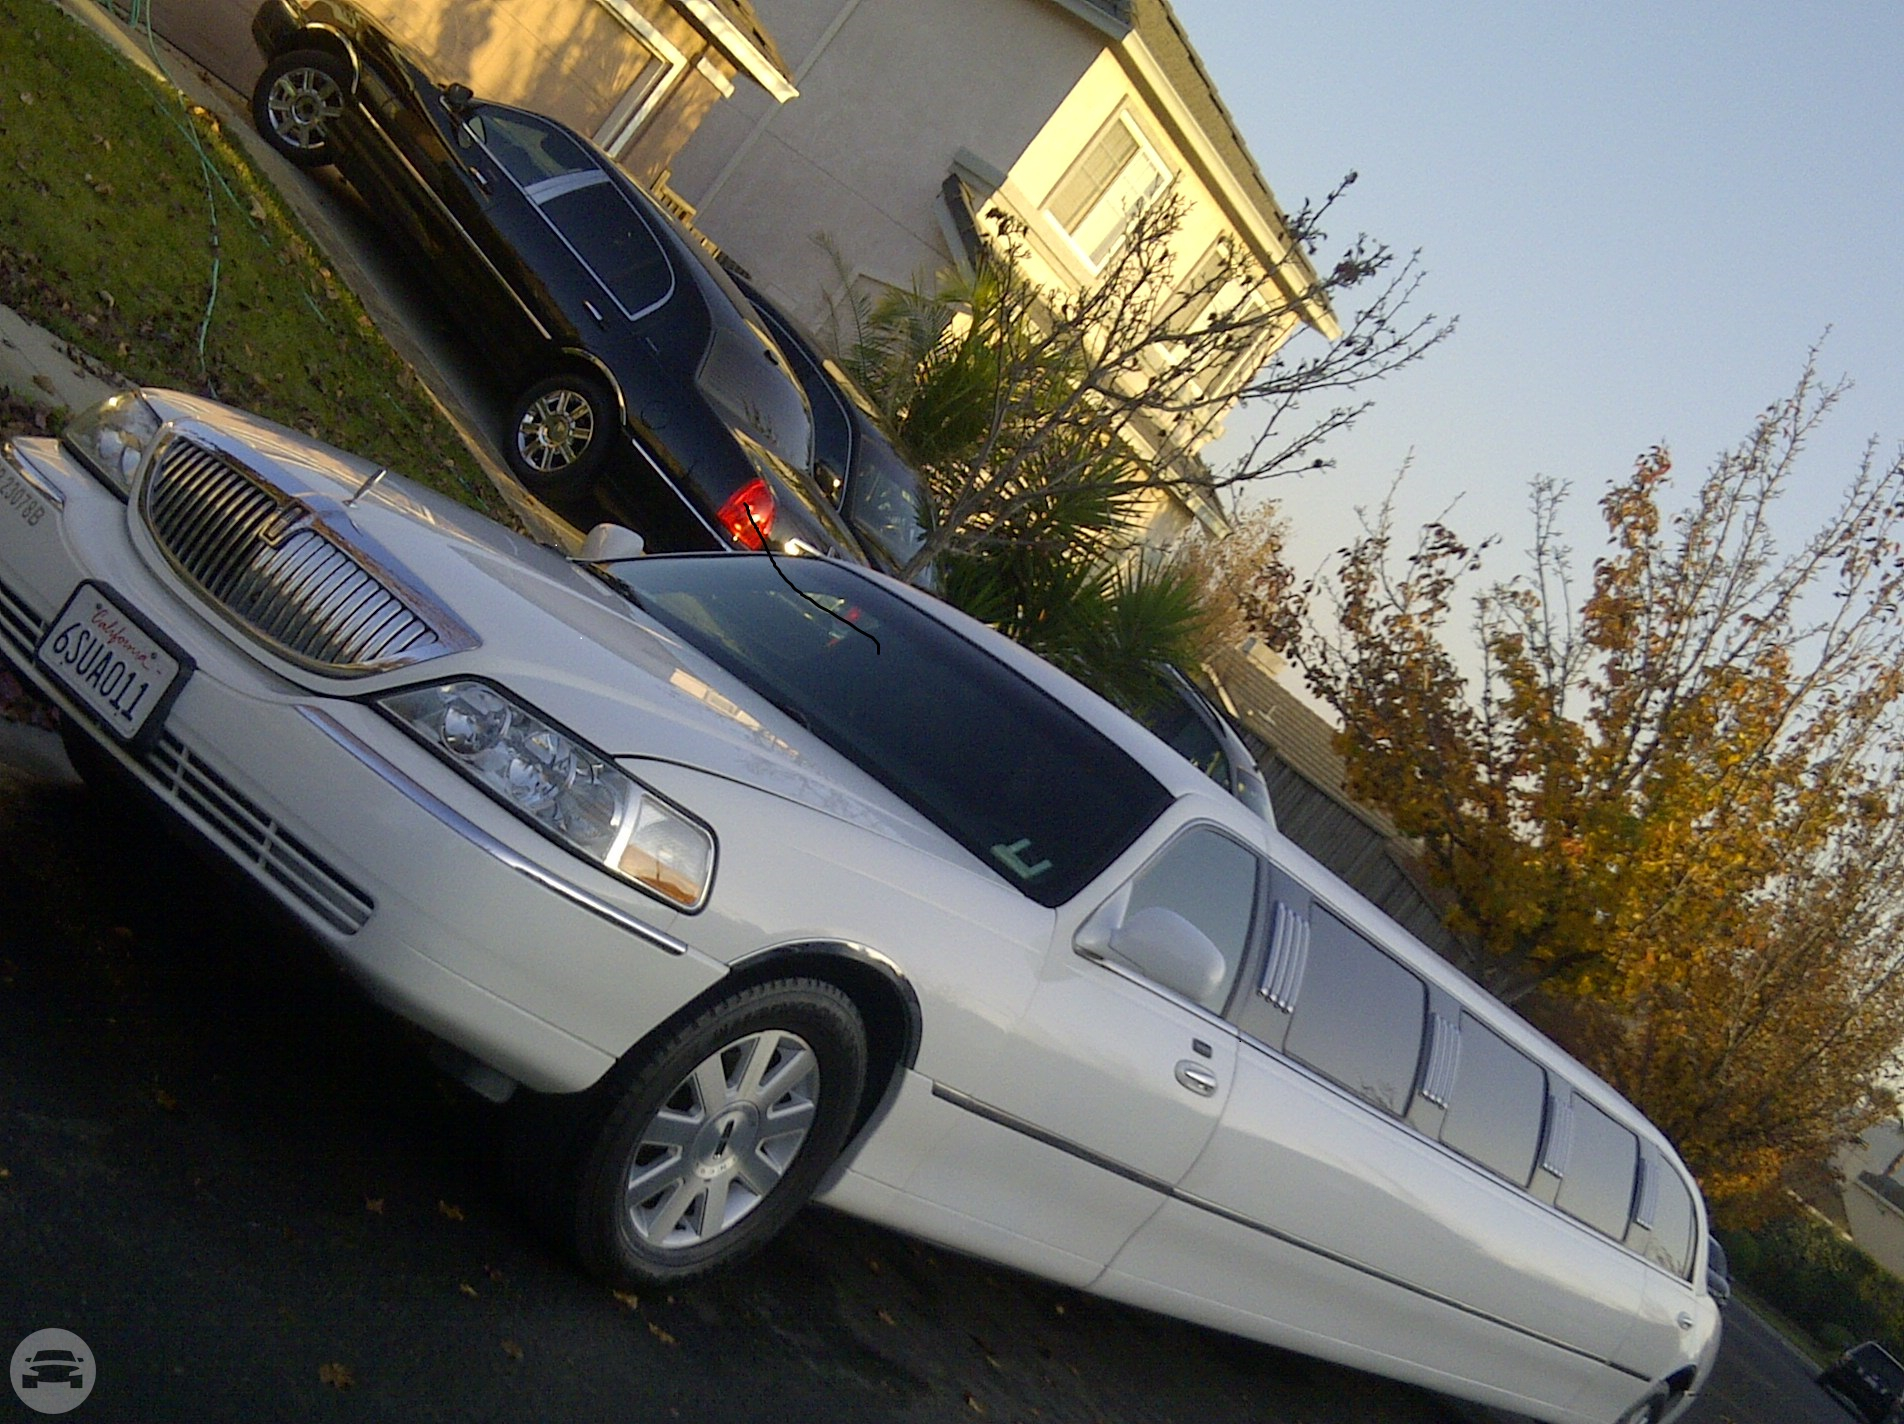 12 passenger stretch limousine Limo  / Larkspur, CA   / Hourly $0.00